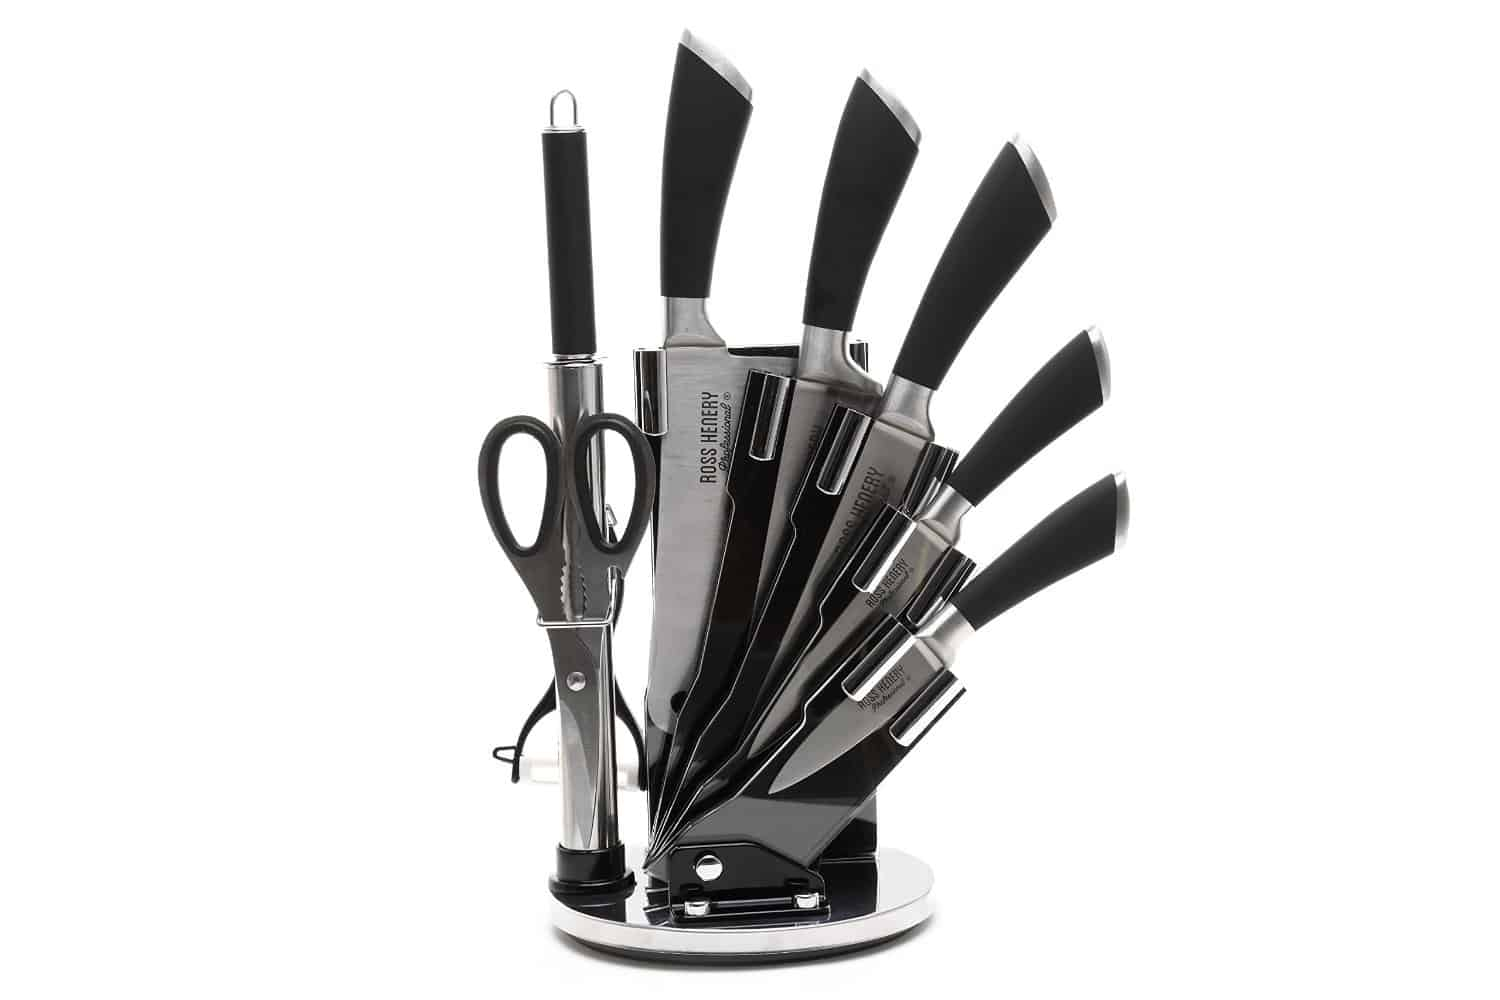 ross henery stainless steel piece kitchen knife set review cooks knife paring knife carving fork